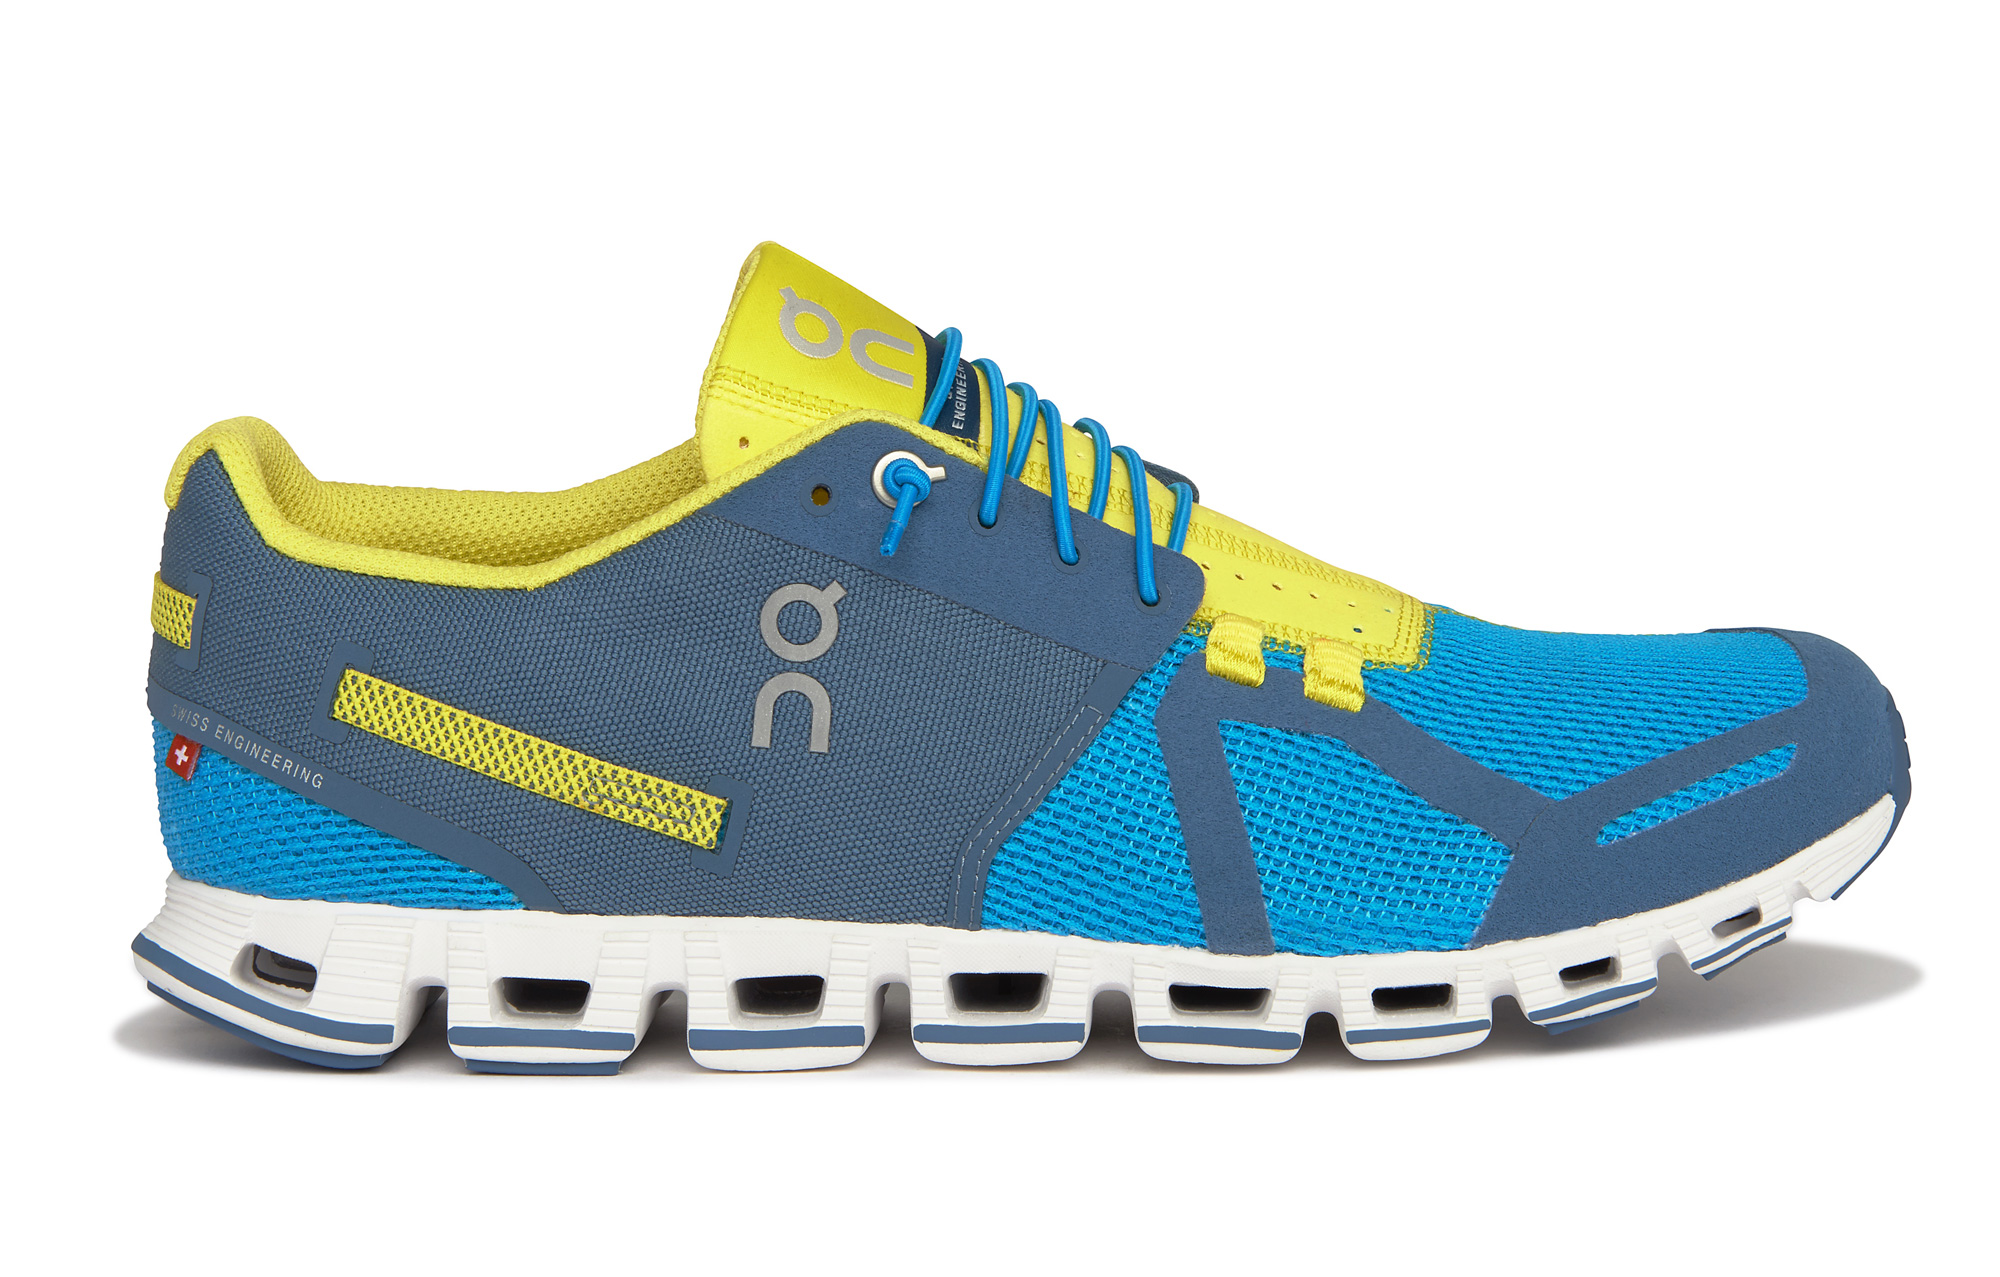 on running shoes cloud blue yellow men. Black Bedroom Furniture Sets. Home Design Ideas